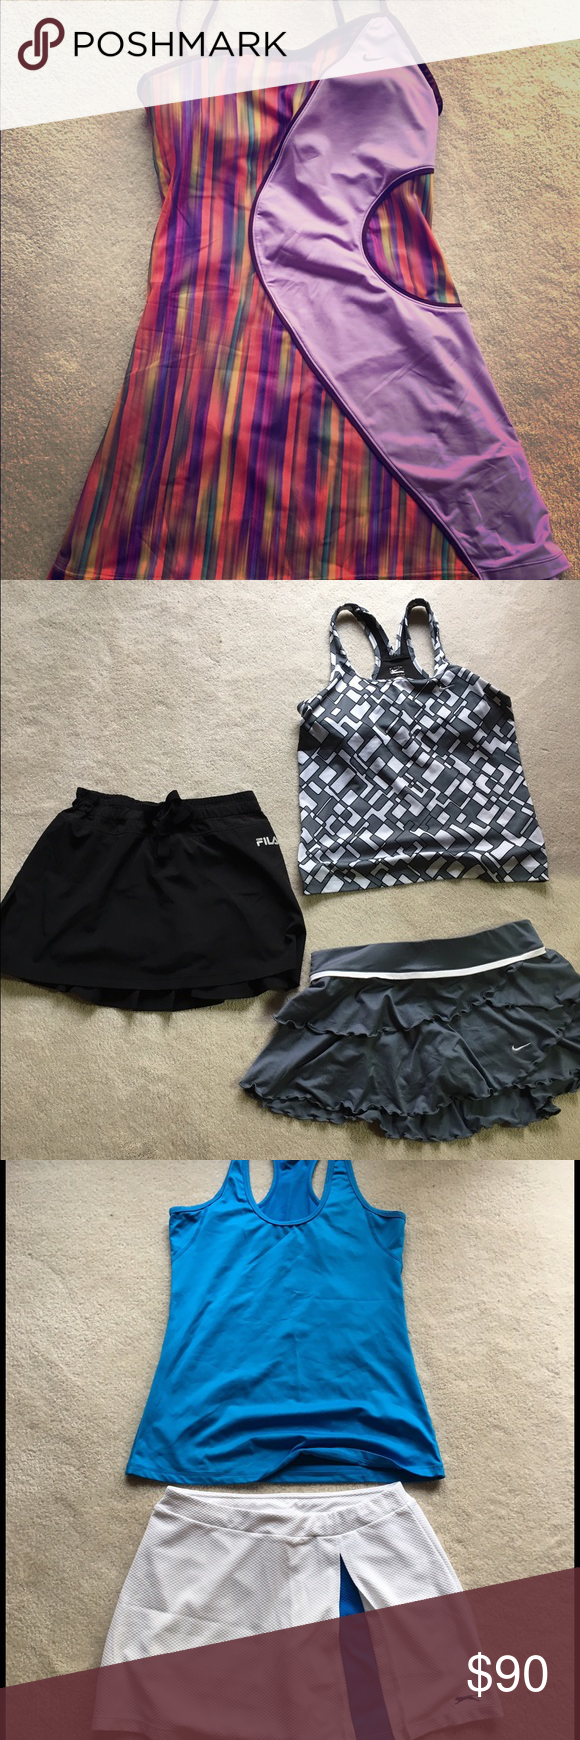 Tennis outfits Nike dress, Nike skirt and tank, plus four tanks and two  skirts